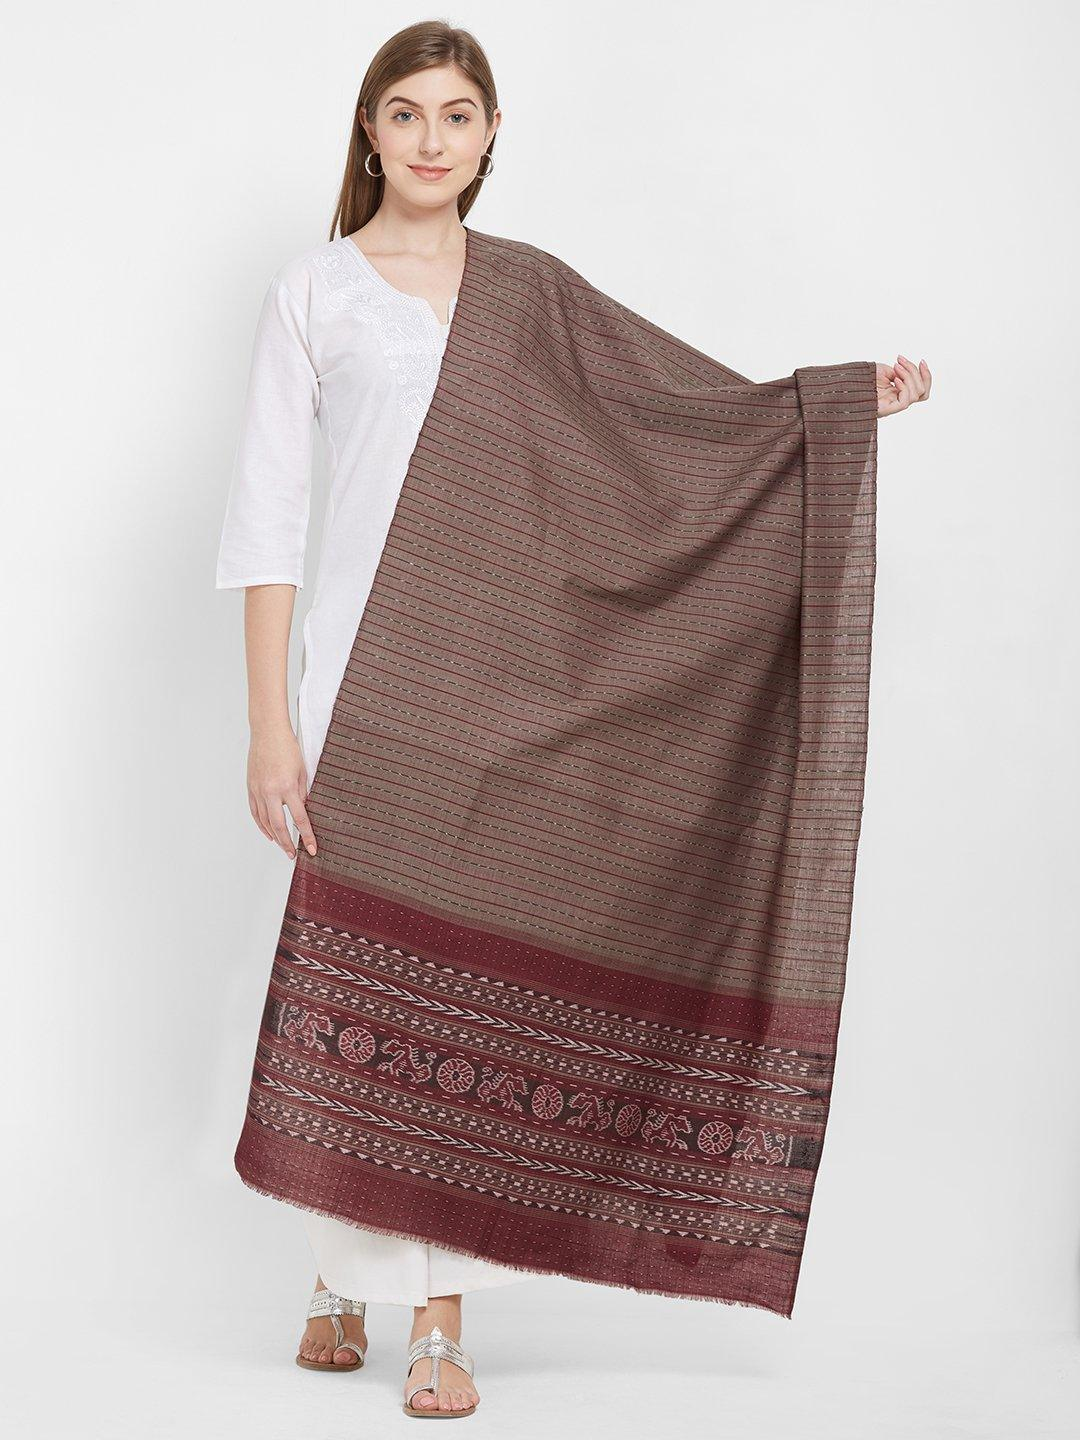 CraftsCollection.in -Grey Cotton Sambalpuri Dupatta